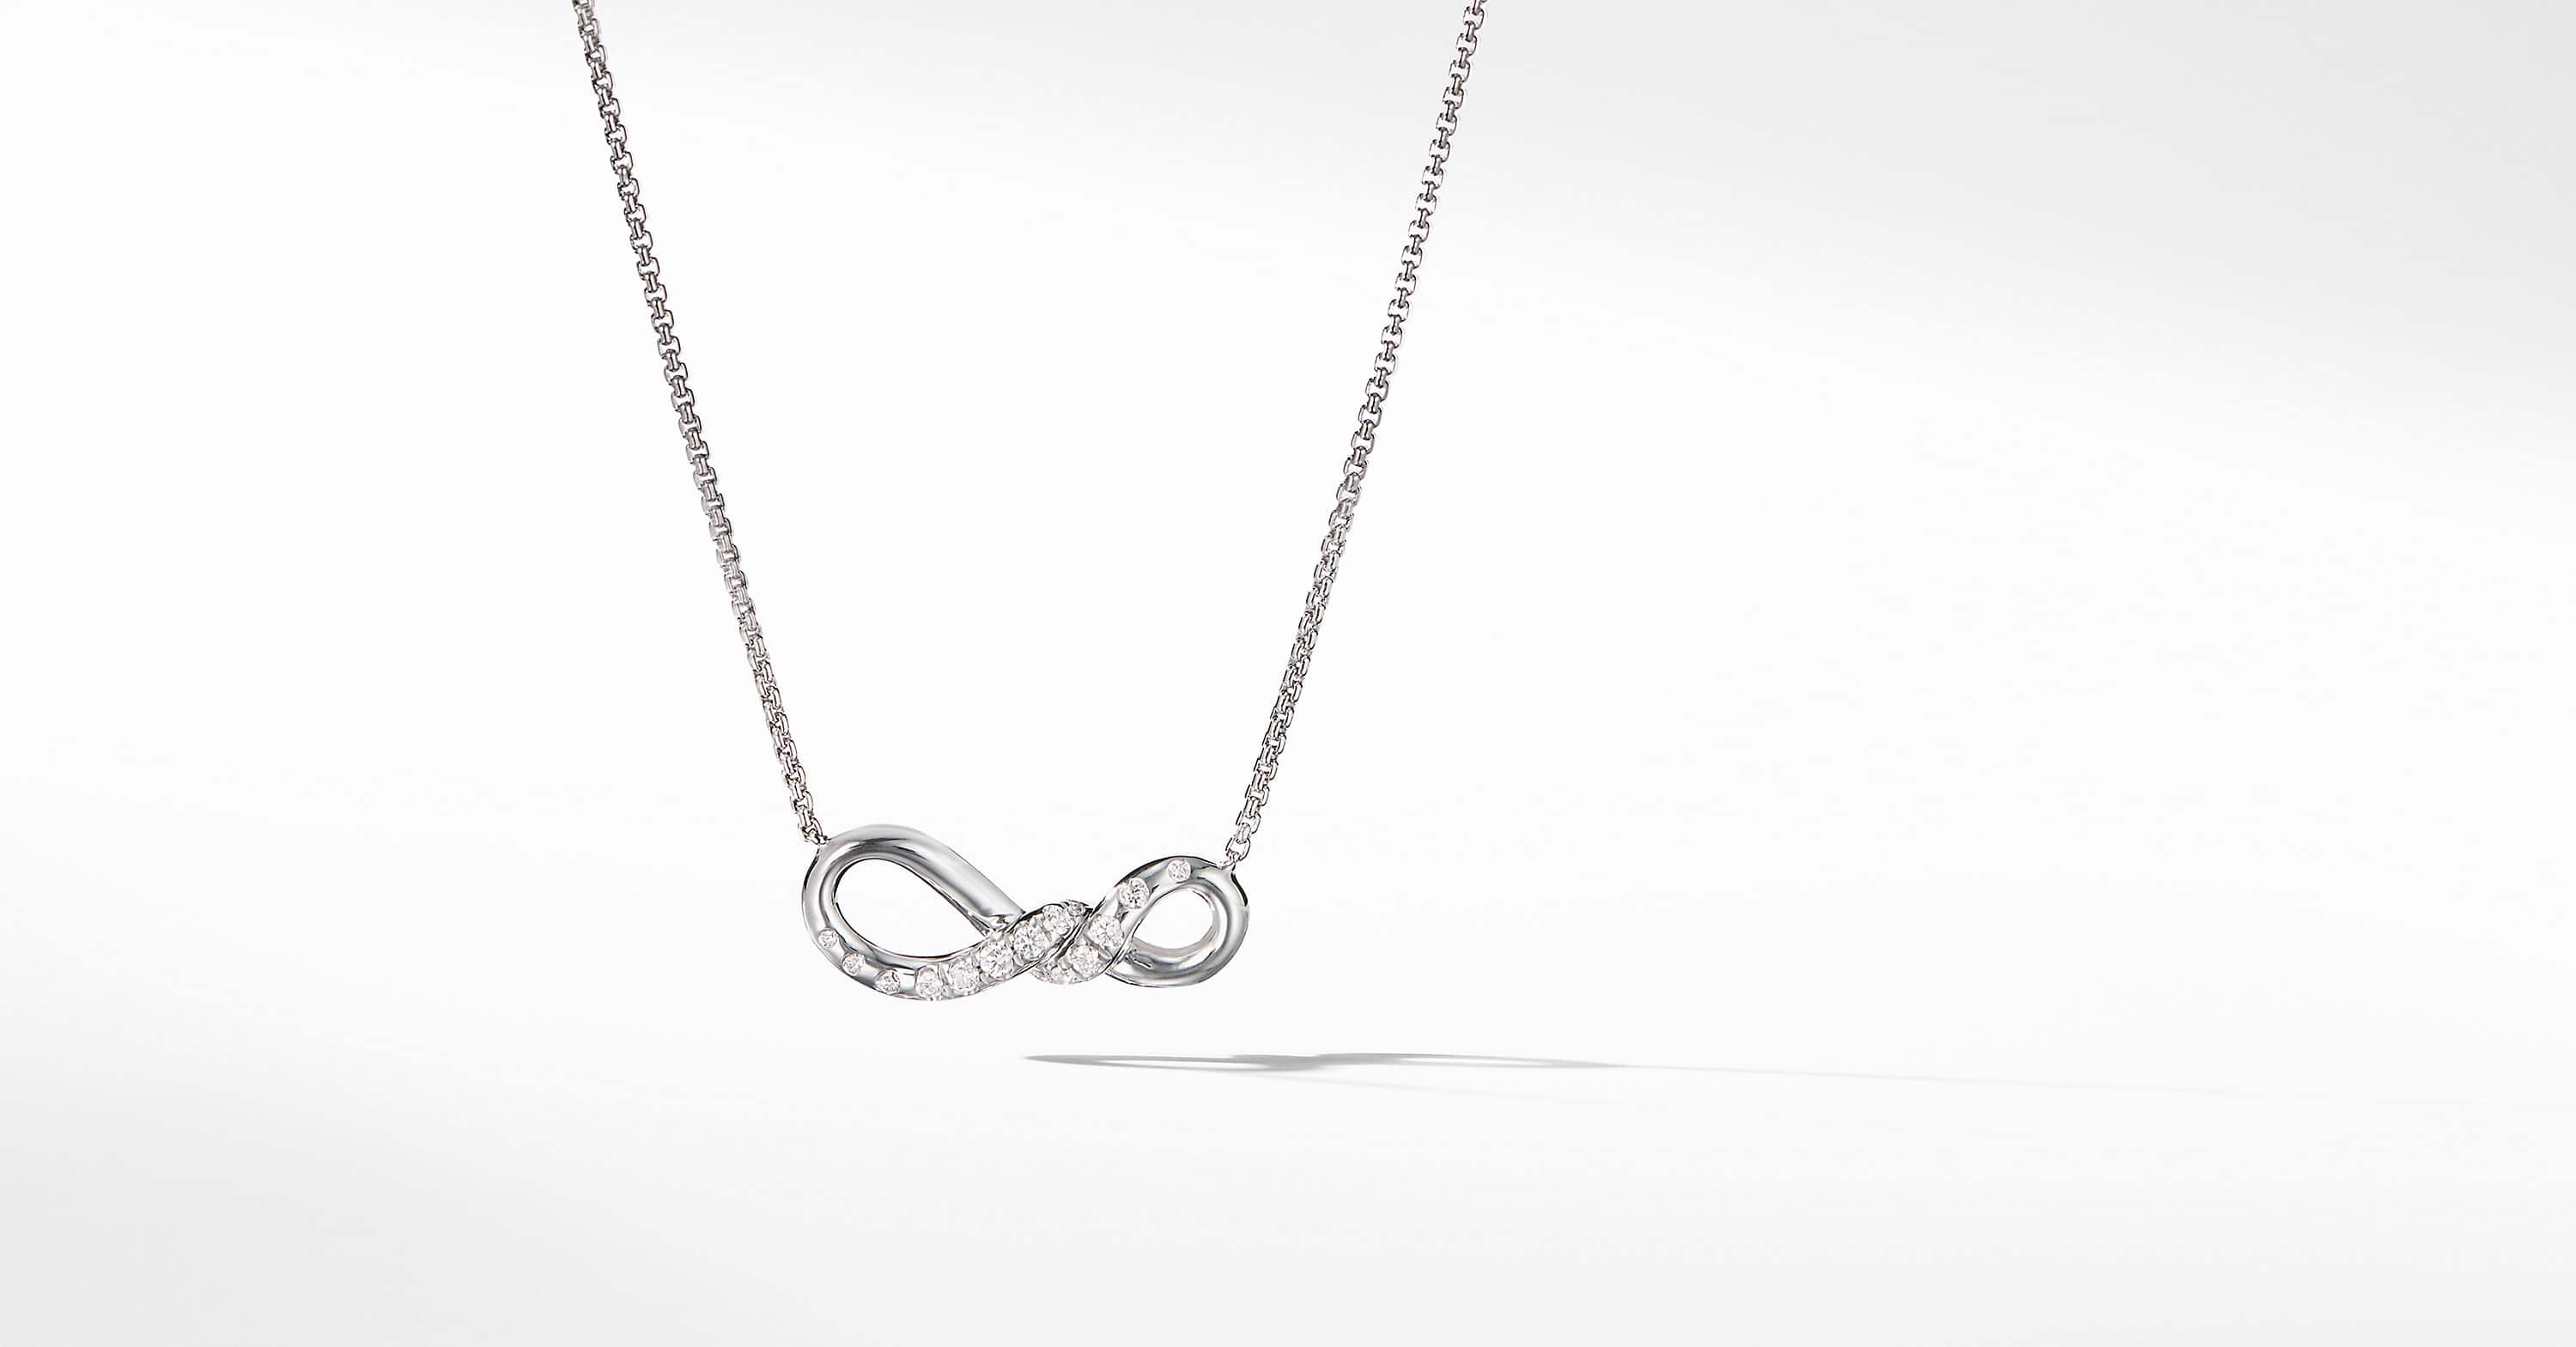 Continuance Small Pendant Necklace with Diamonds in 18K White Gold